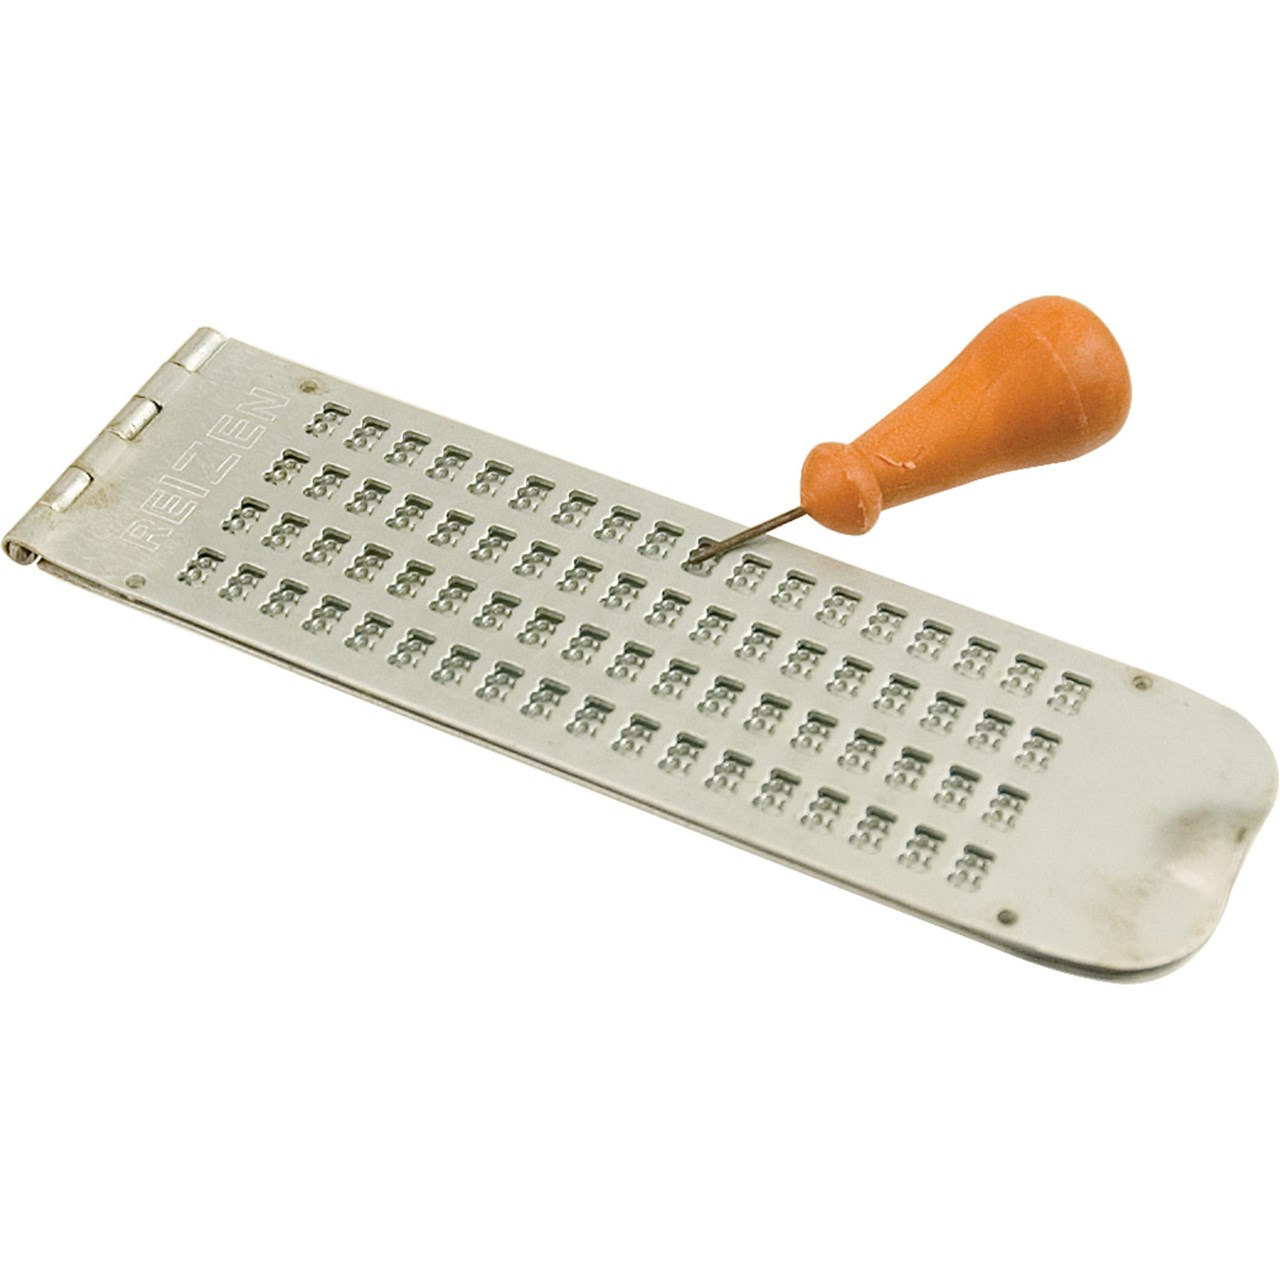 Maxiaids Braille Slate 4 Line 18 Cell Pins Down Metal